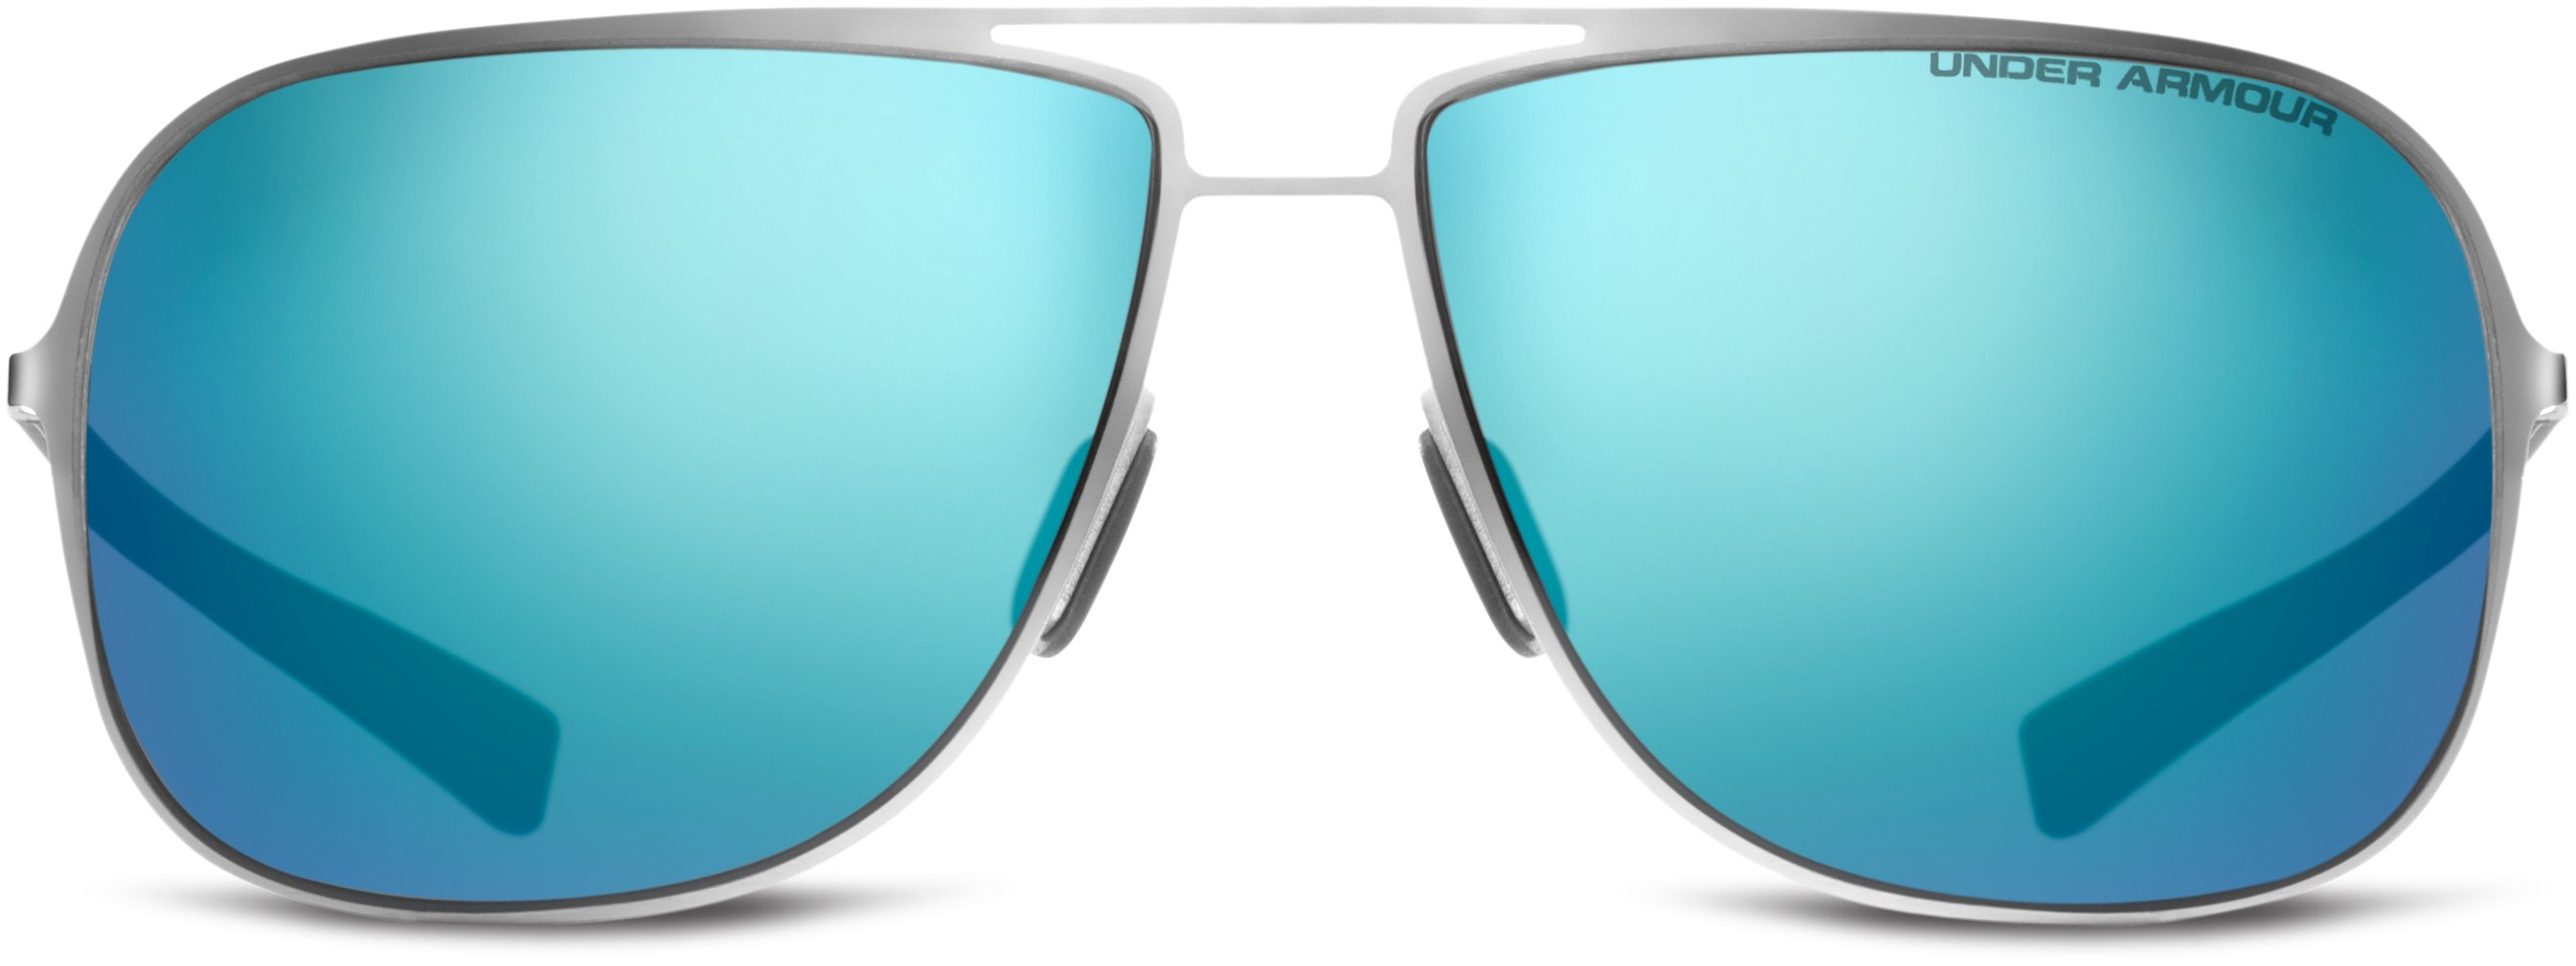 UA Alloy Sunglasses, SHINY SILVER